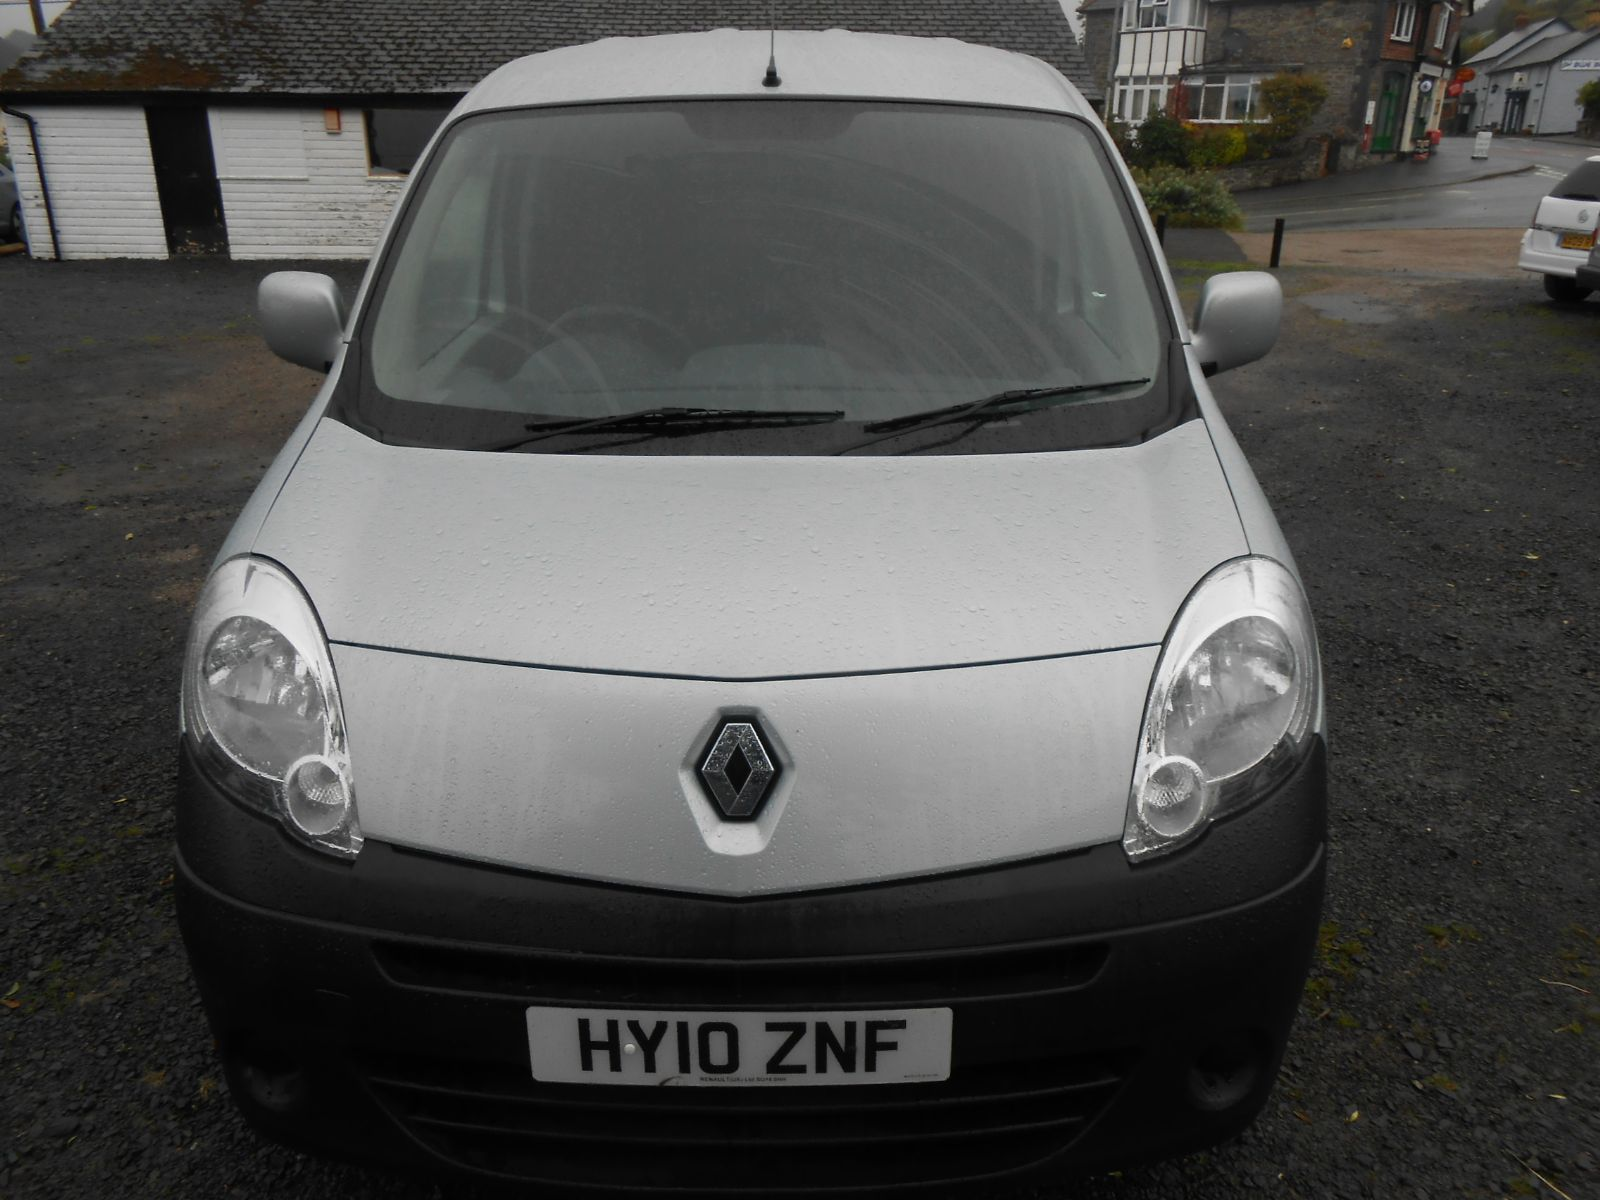 renault kangoo ml19 1 5 dci 70 extra car for sale llanidloes powys mid wales kevin jones cars. Black Bedroom Furniture Sets. Home Design Ideas